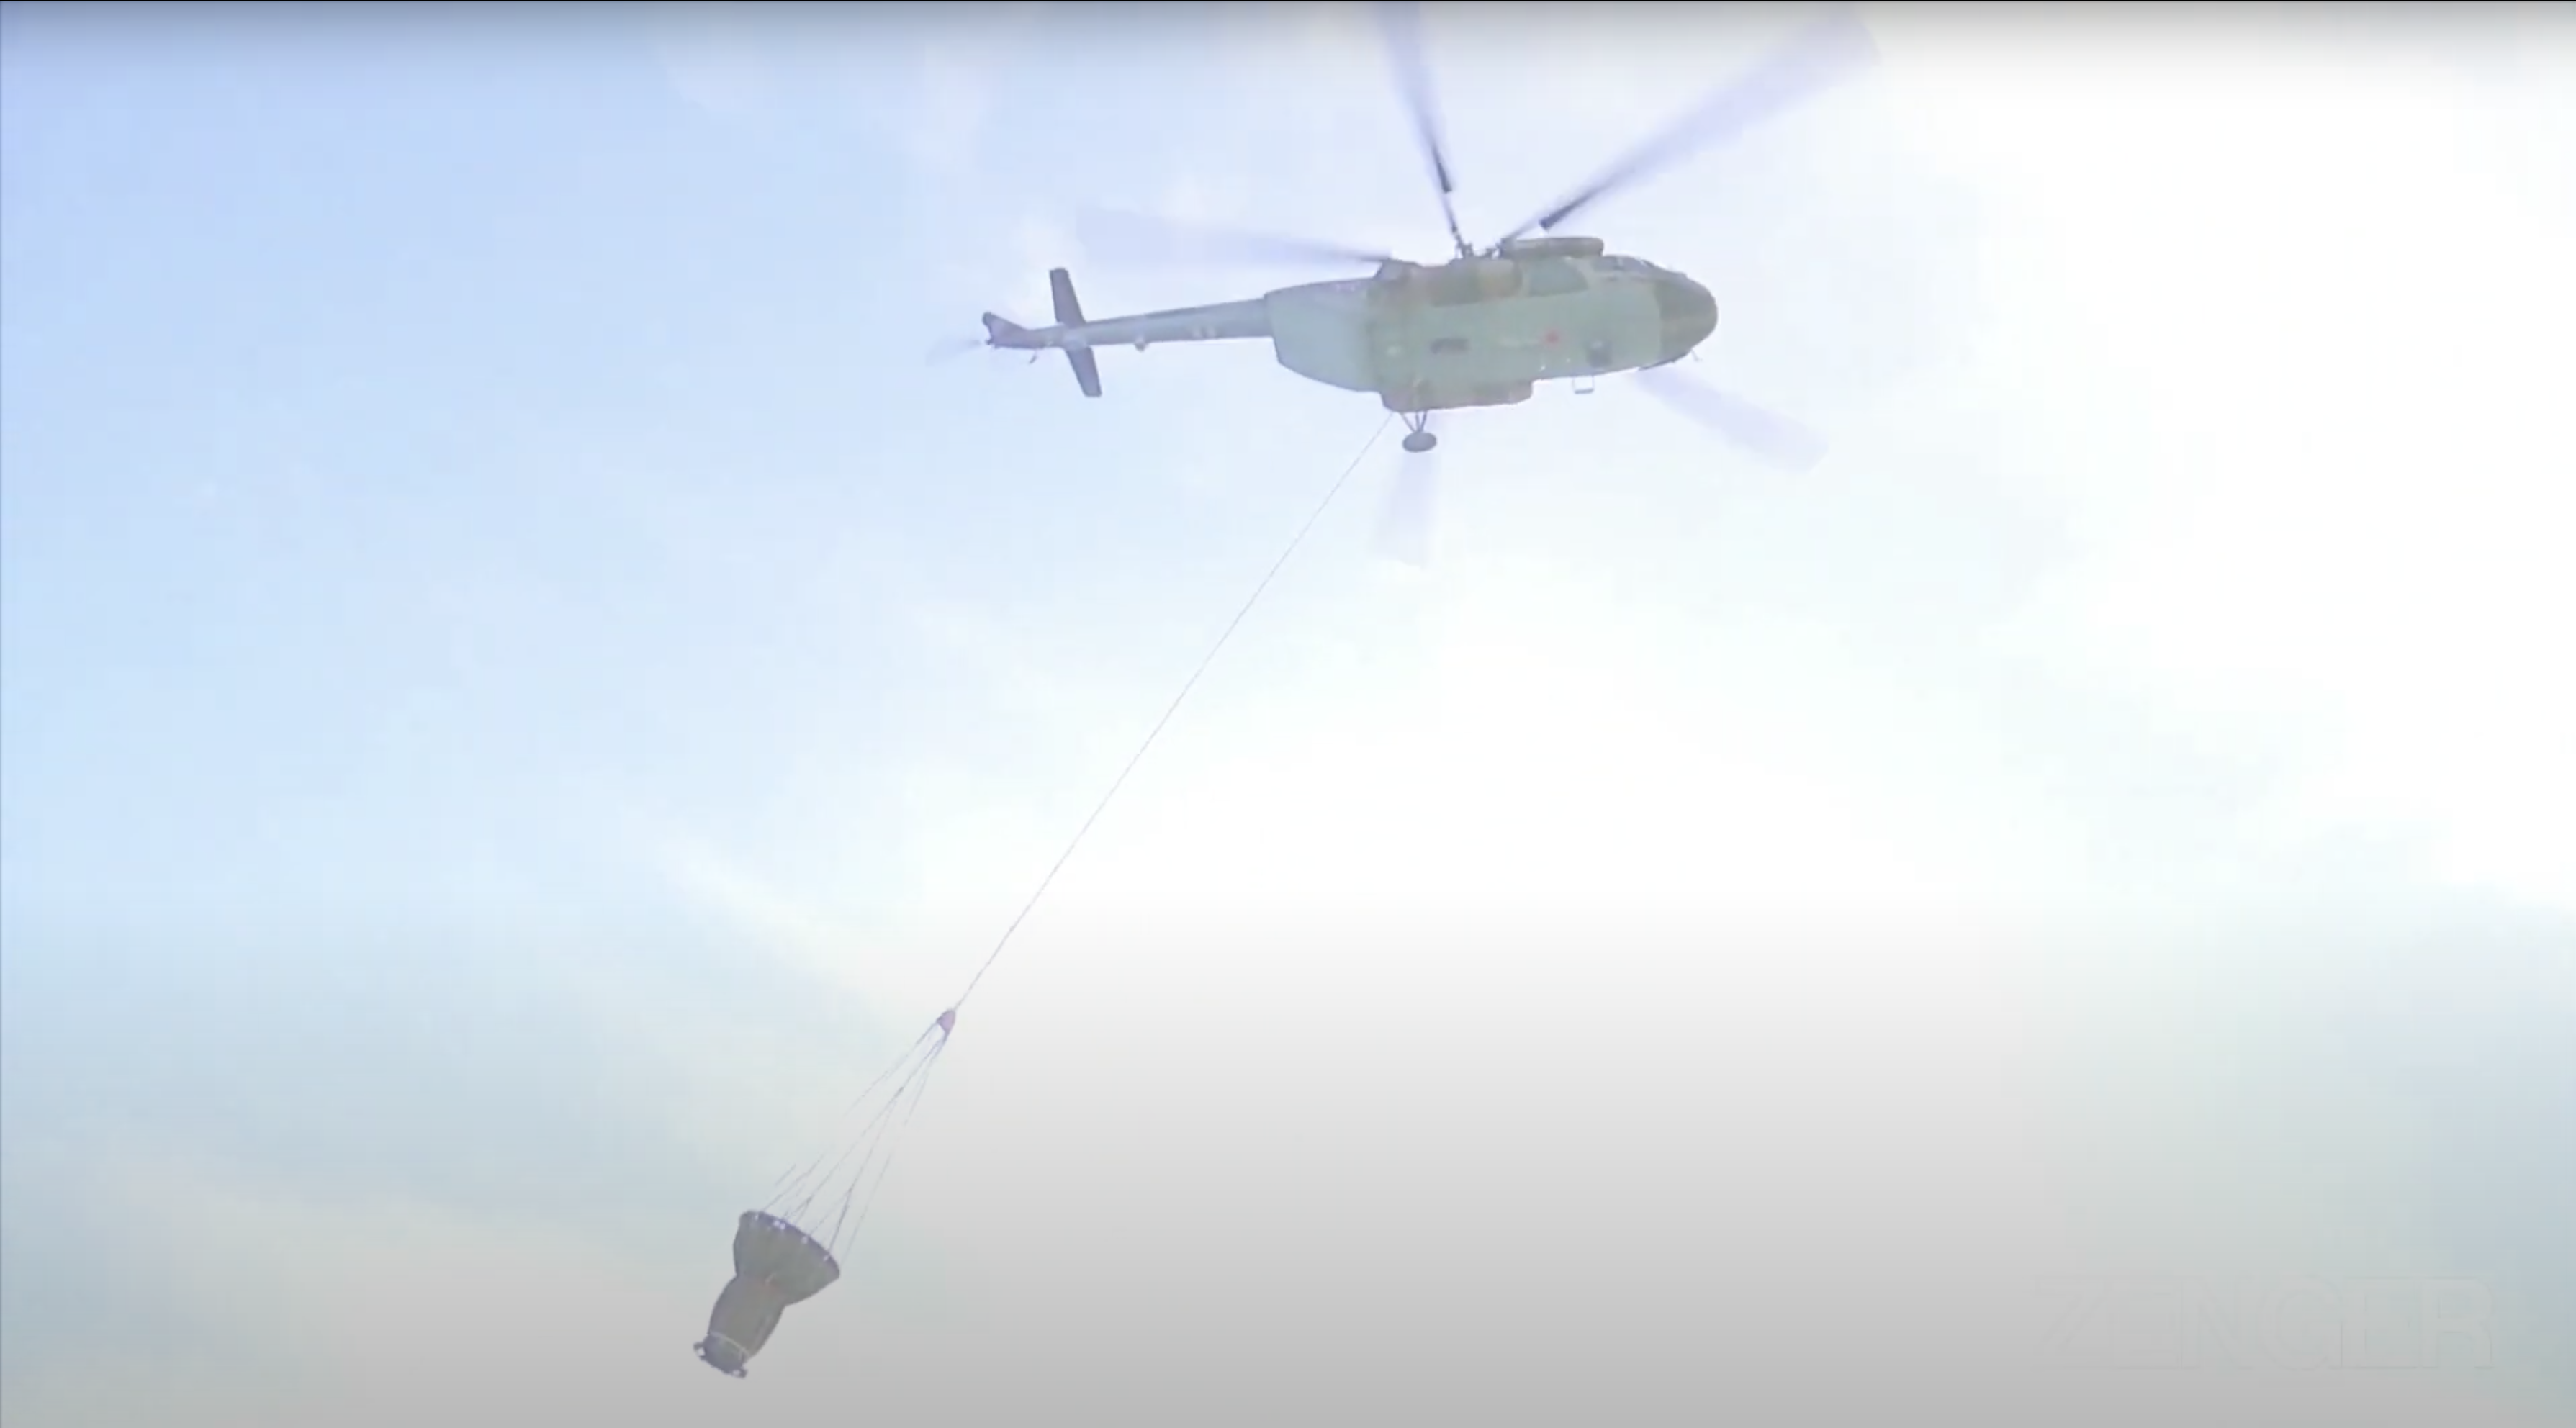 VIDEO: Military Helicopter Drops Massive Amount Of Water Onto Russian Fire